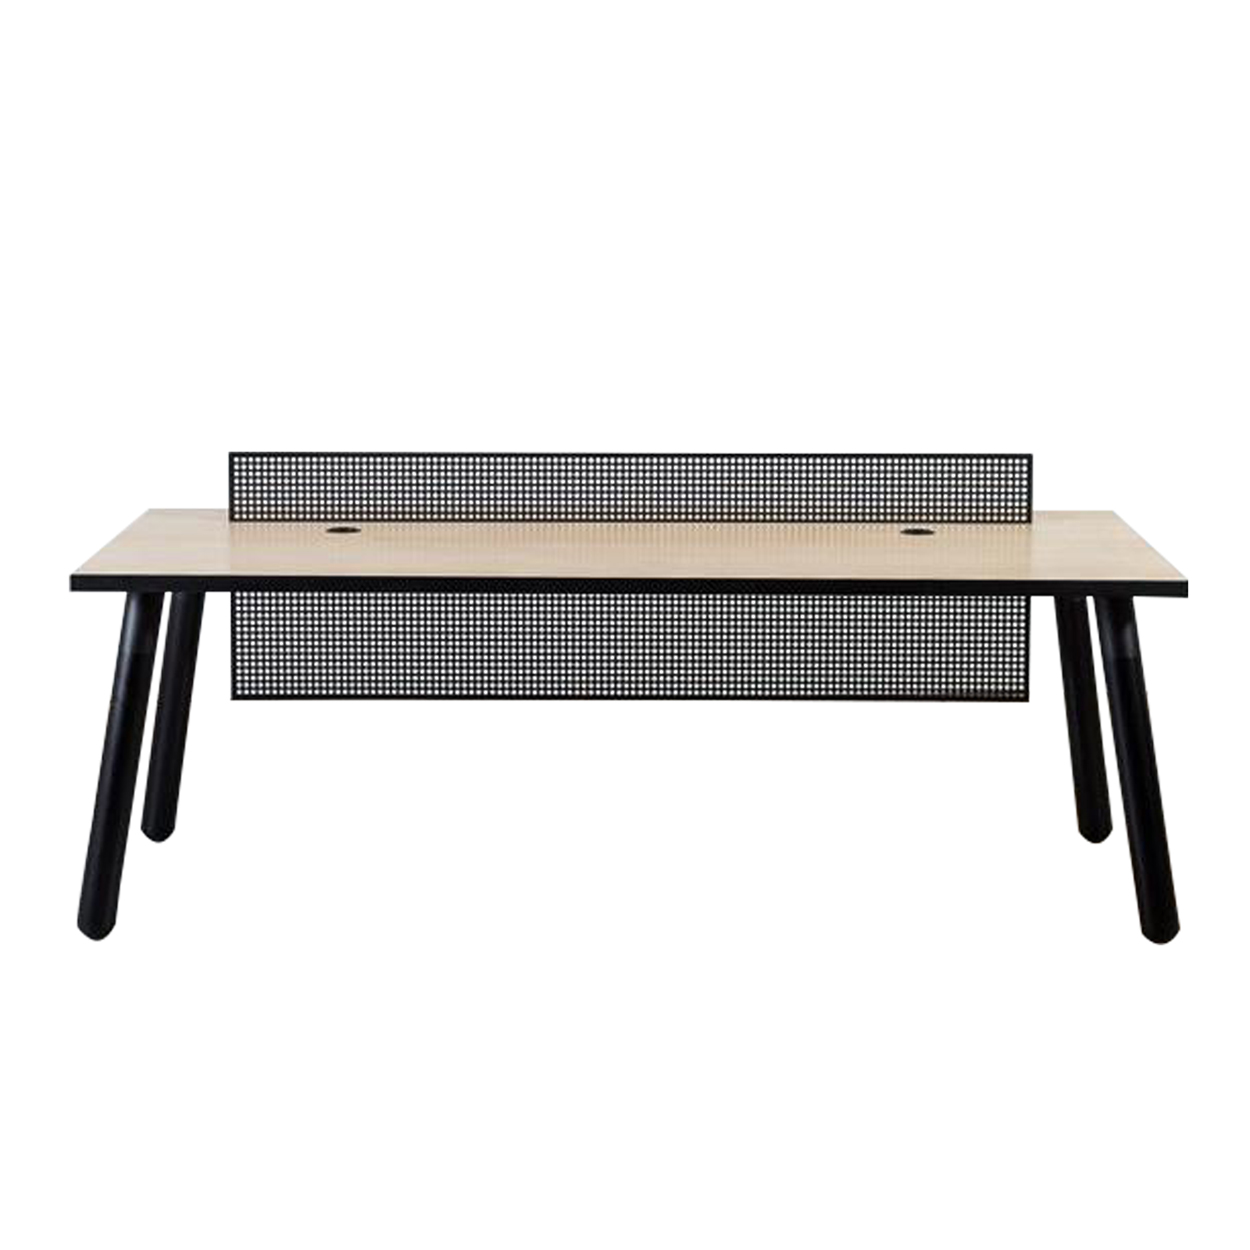 Two Design Lovers Koskela PBS black reception desk front